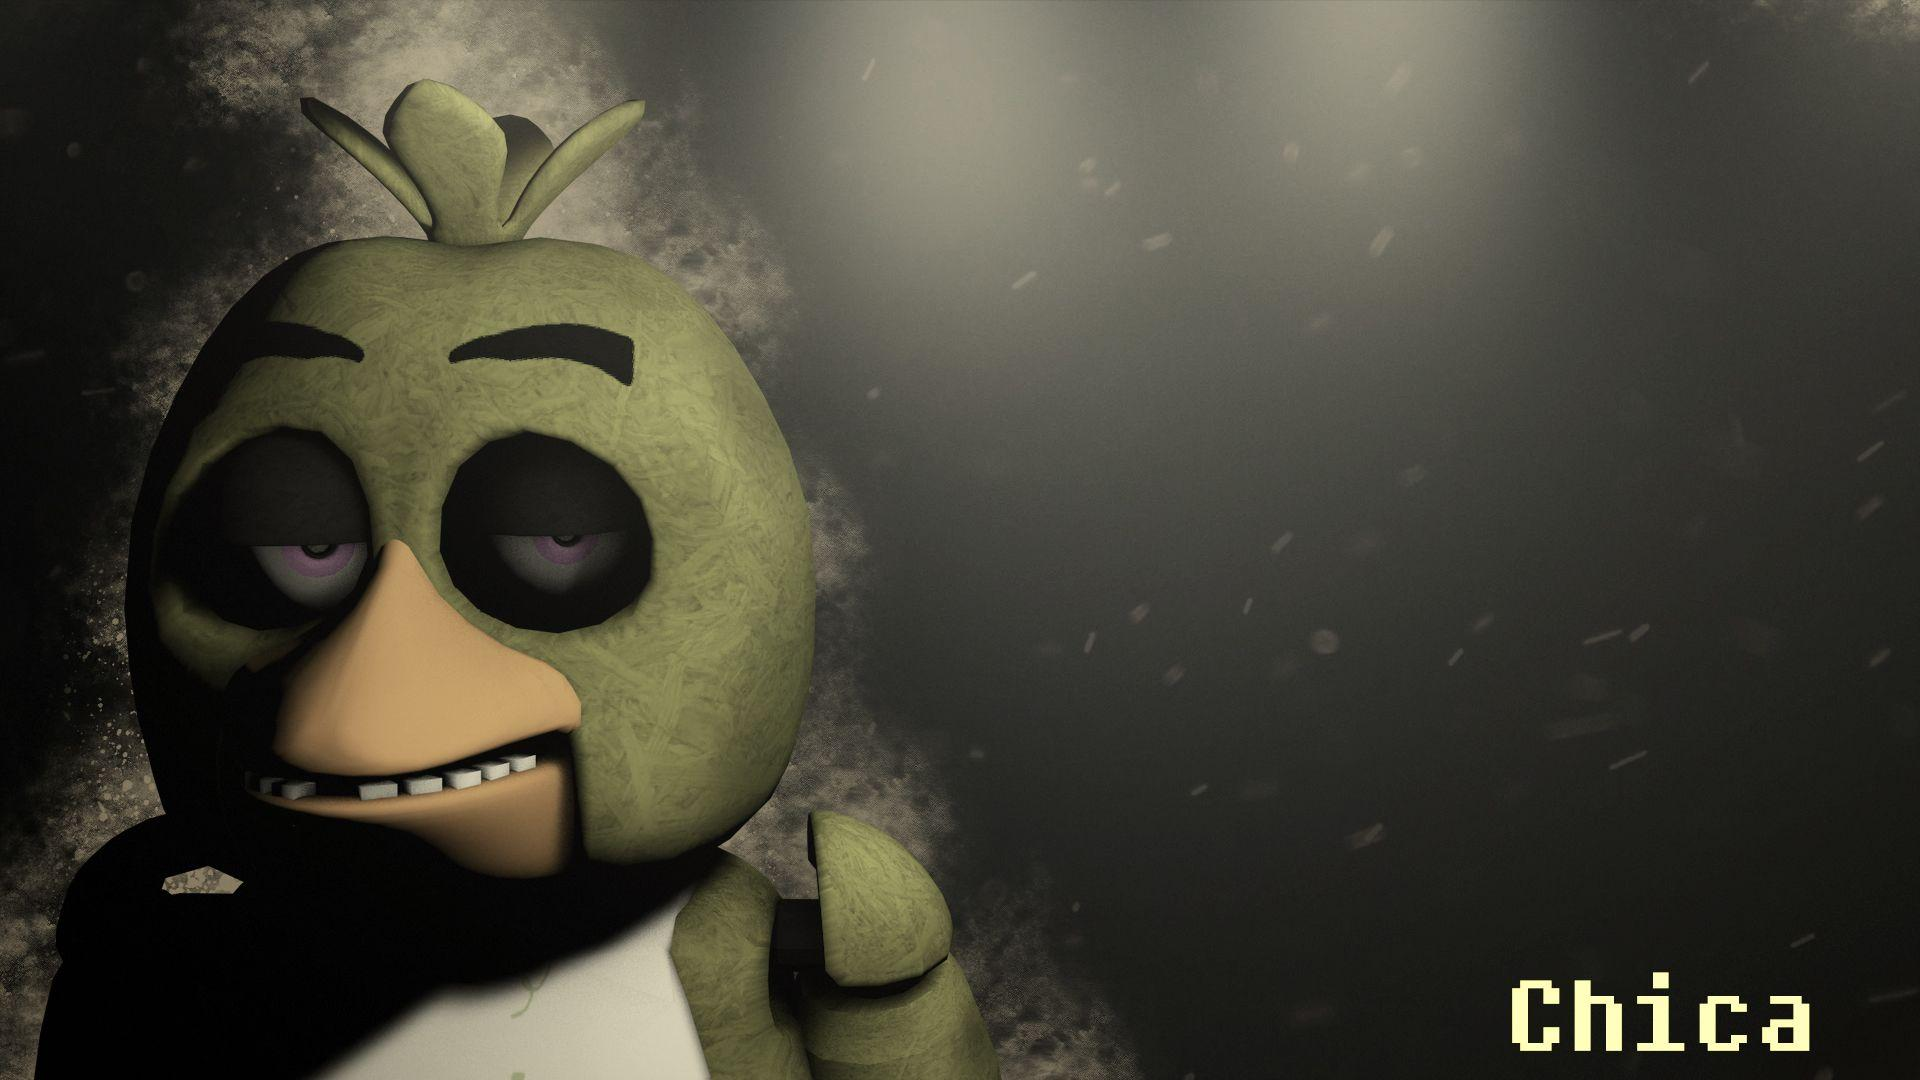 Five Nights at Freddy's Chica Wallpaper DOWNLOAD by NiksonYT on ...